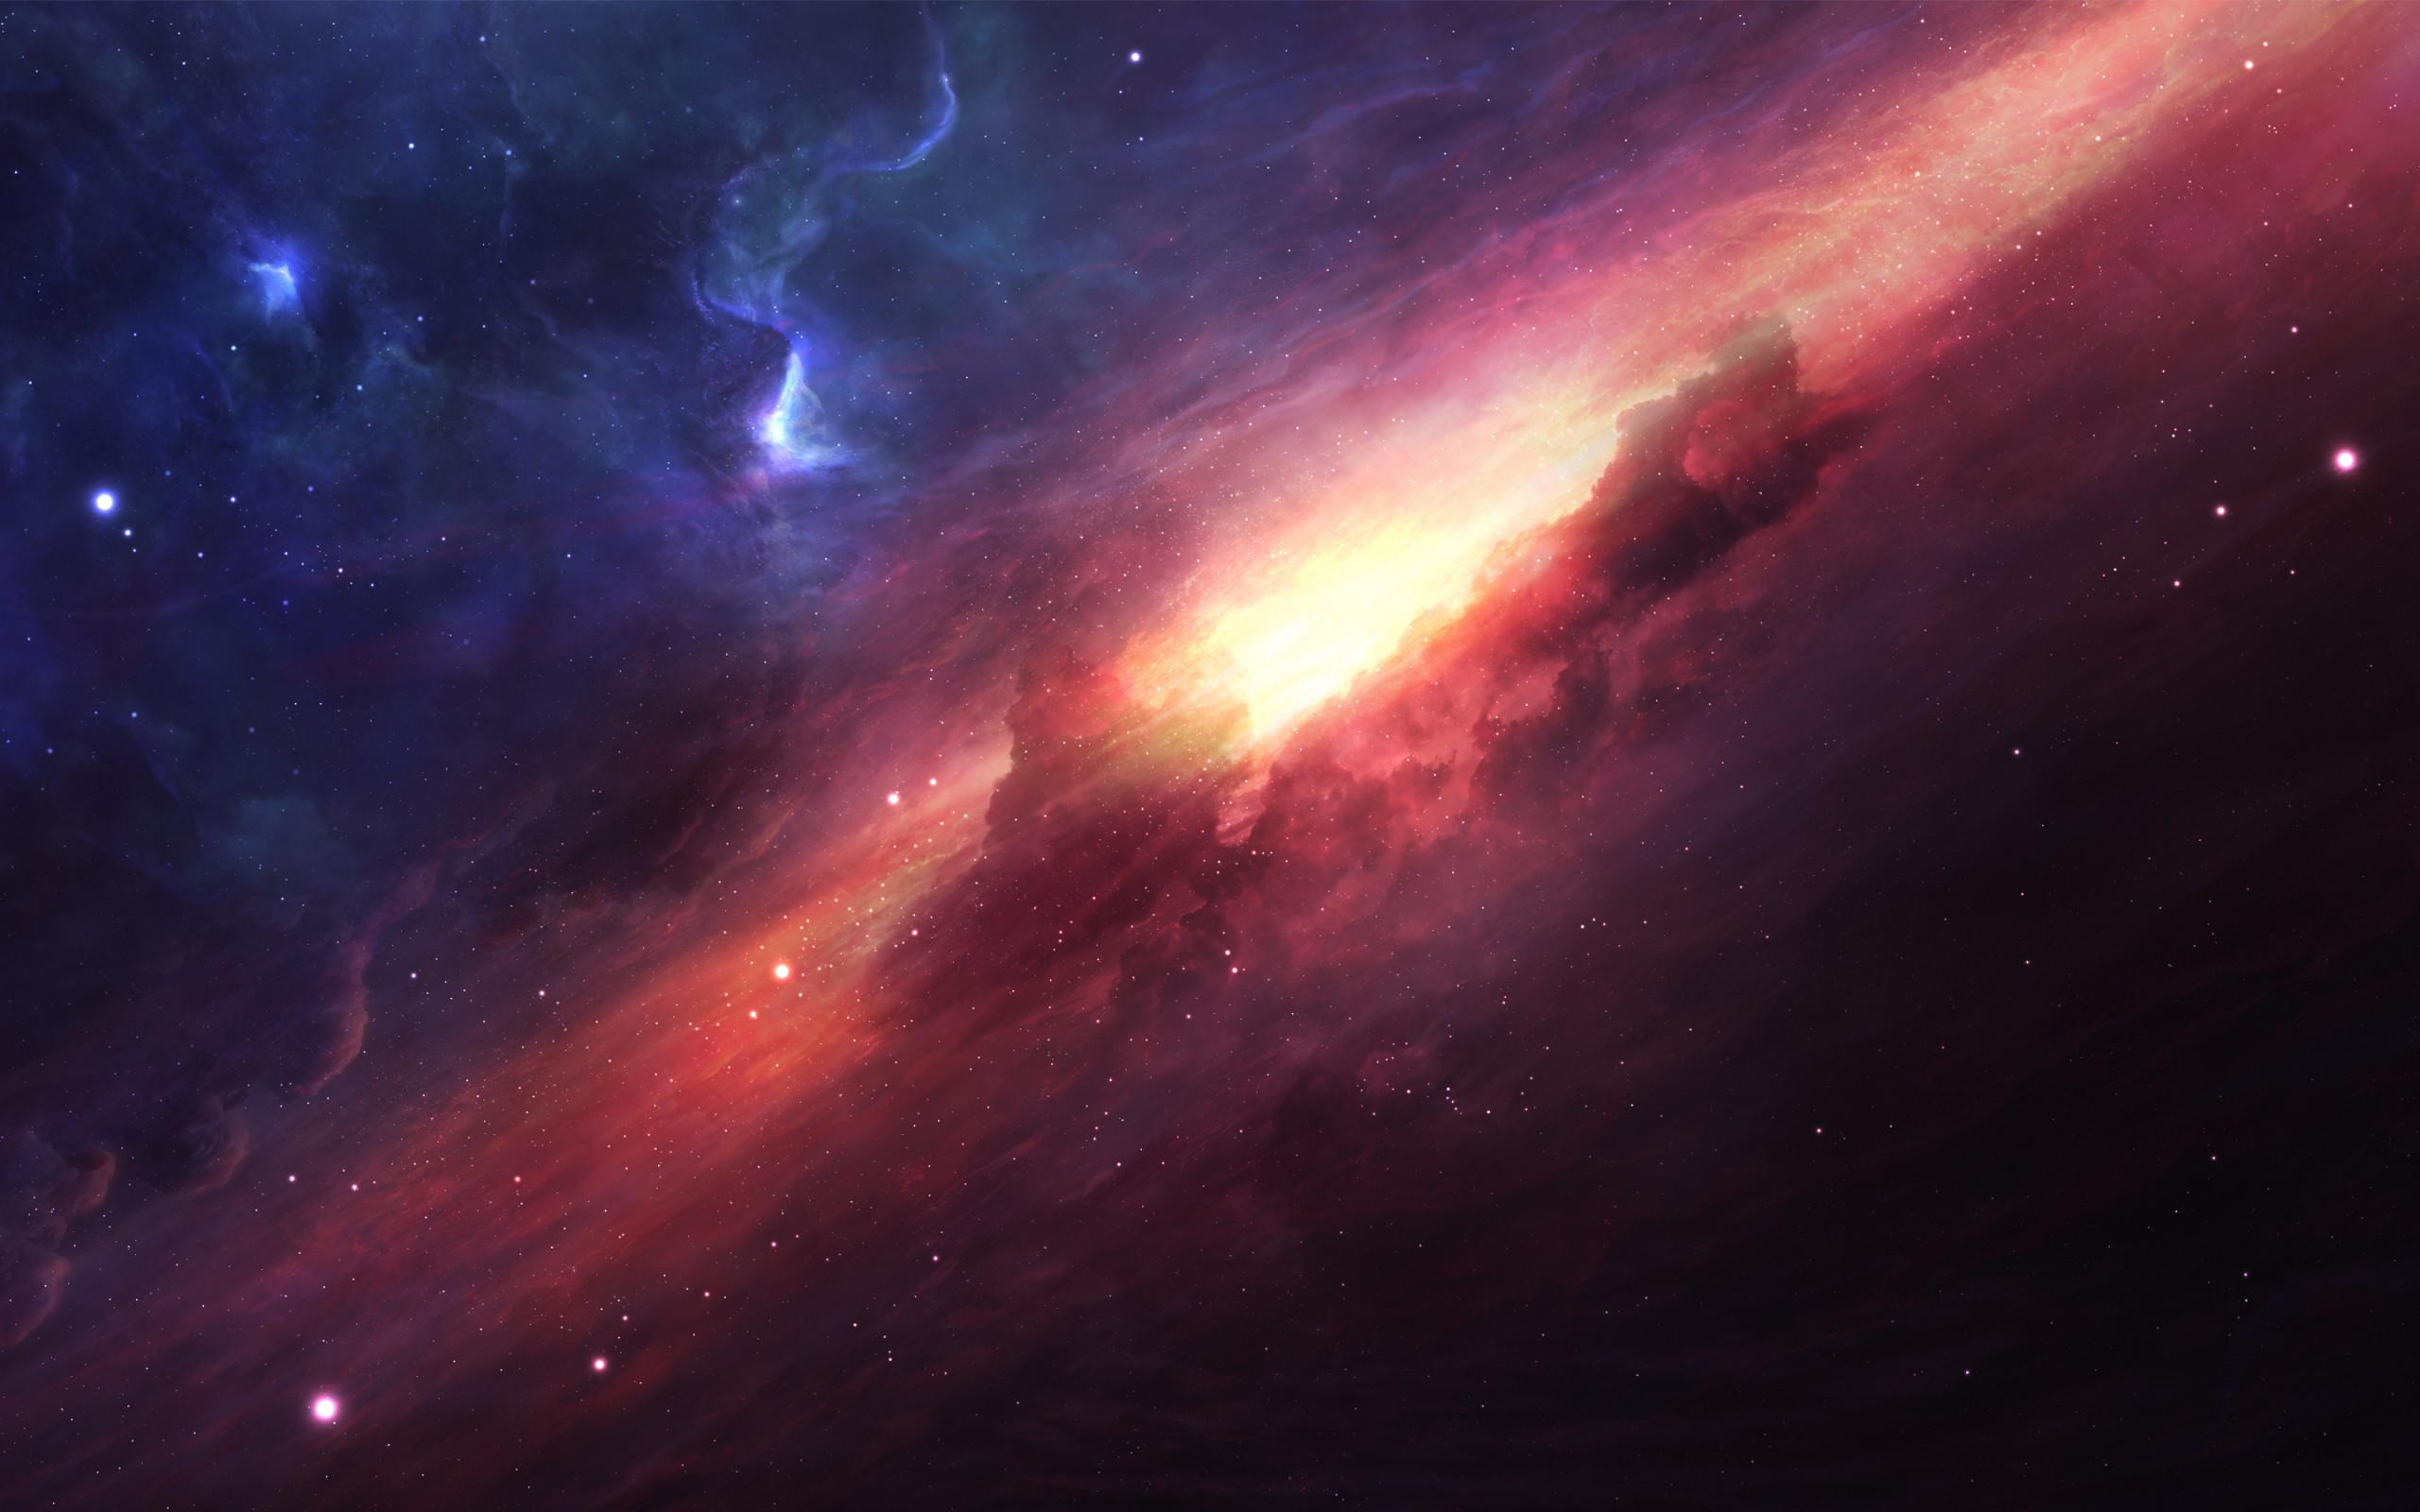 Ultra Hd 4k Wallpapers For Iphone Digital Space Universe 4k 8k Wallpapers Hd Wallpapers